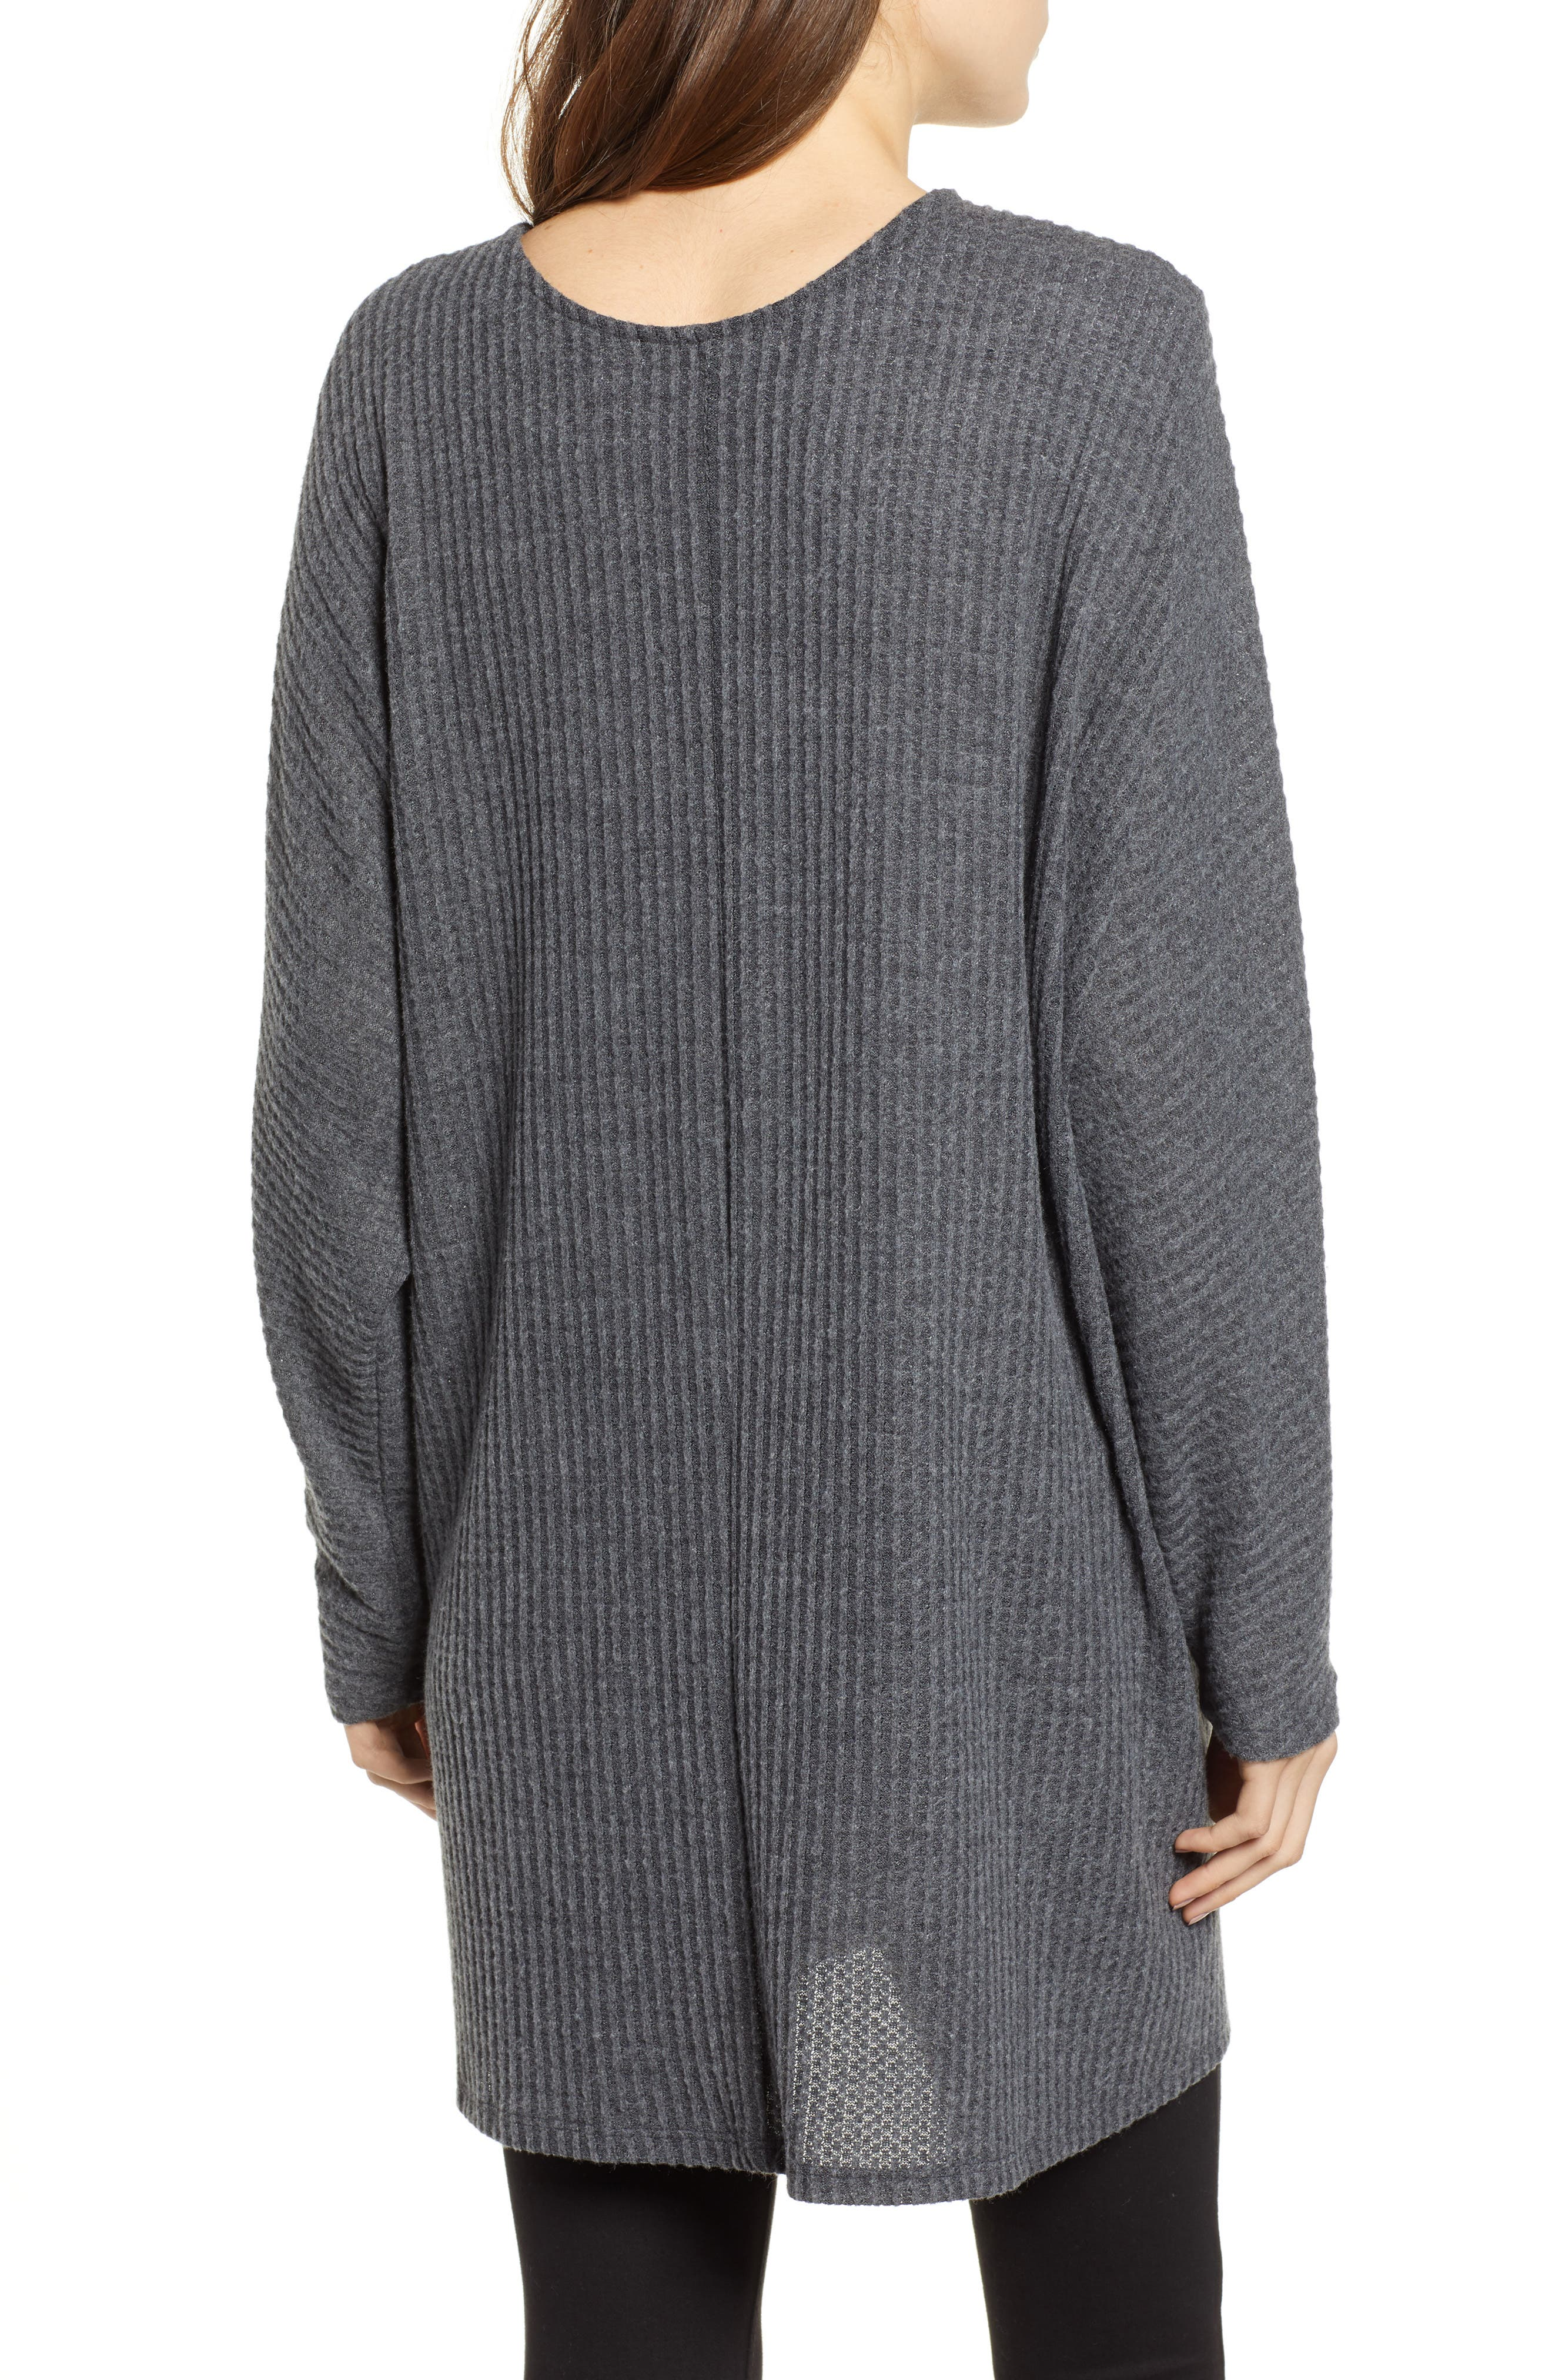 Keep It Casual Thermal Cardigan,                             Alternate thumbnail 2, color,                             CHARCOAL